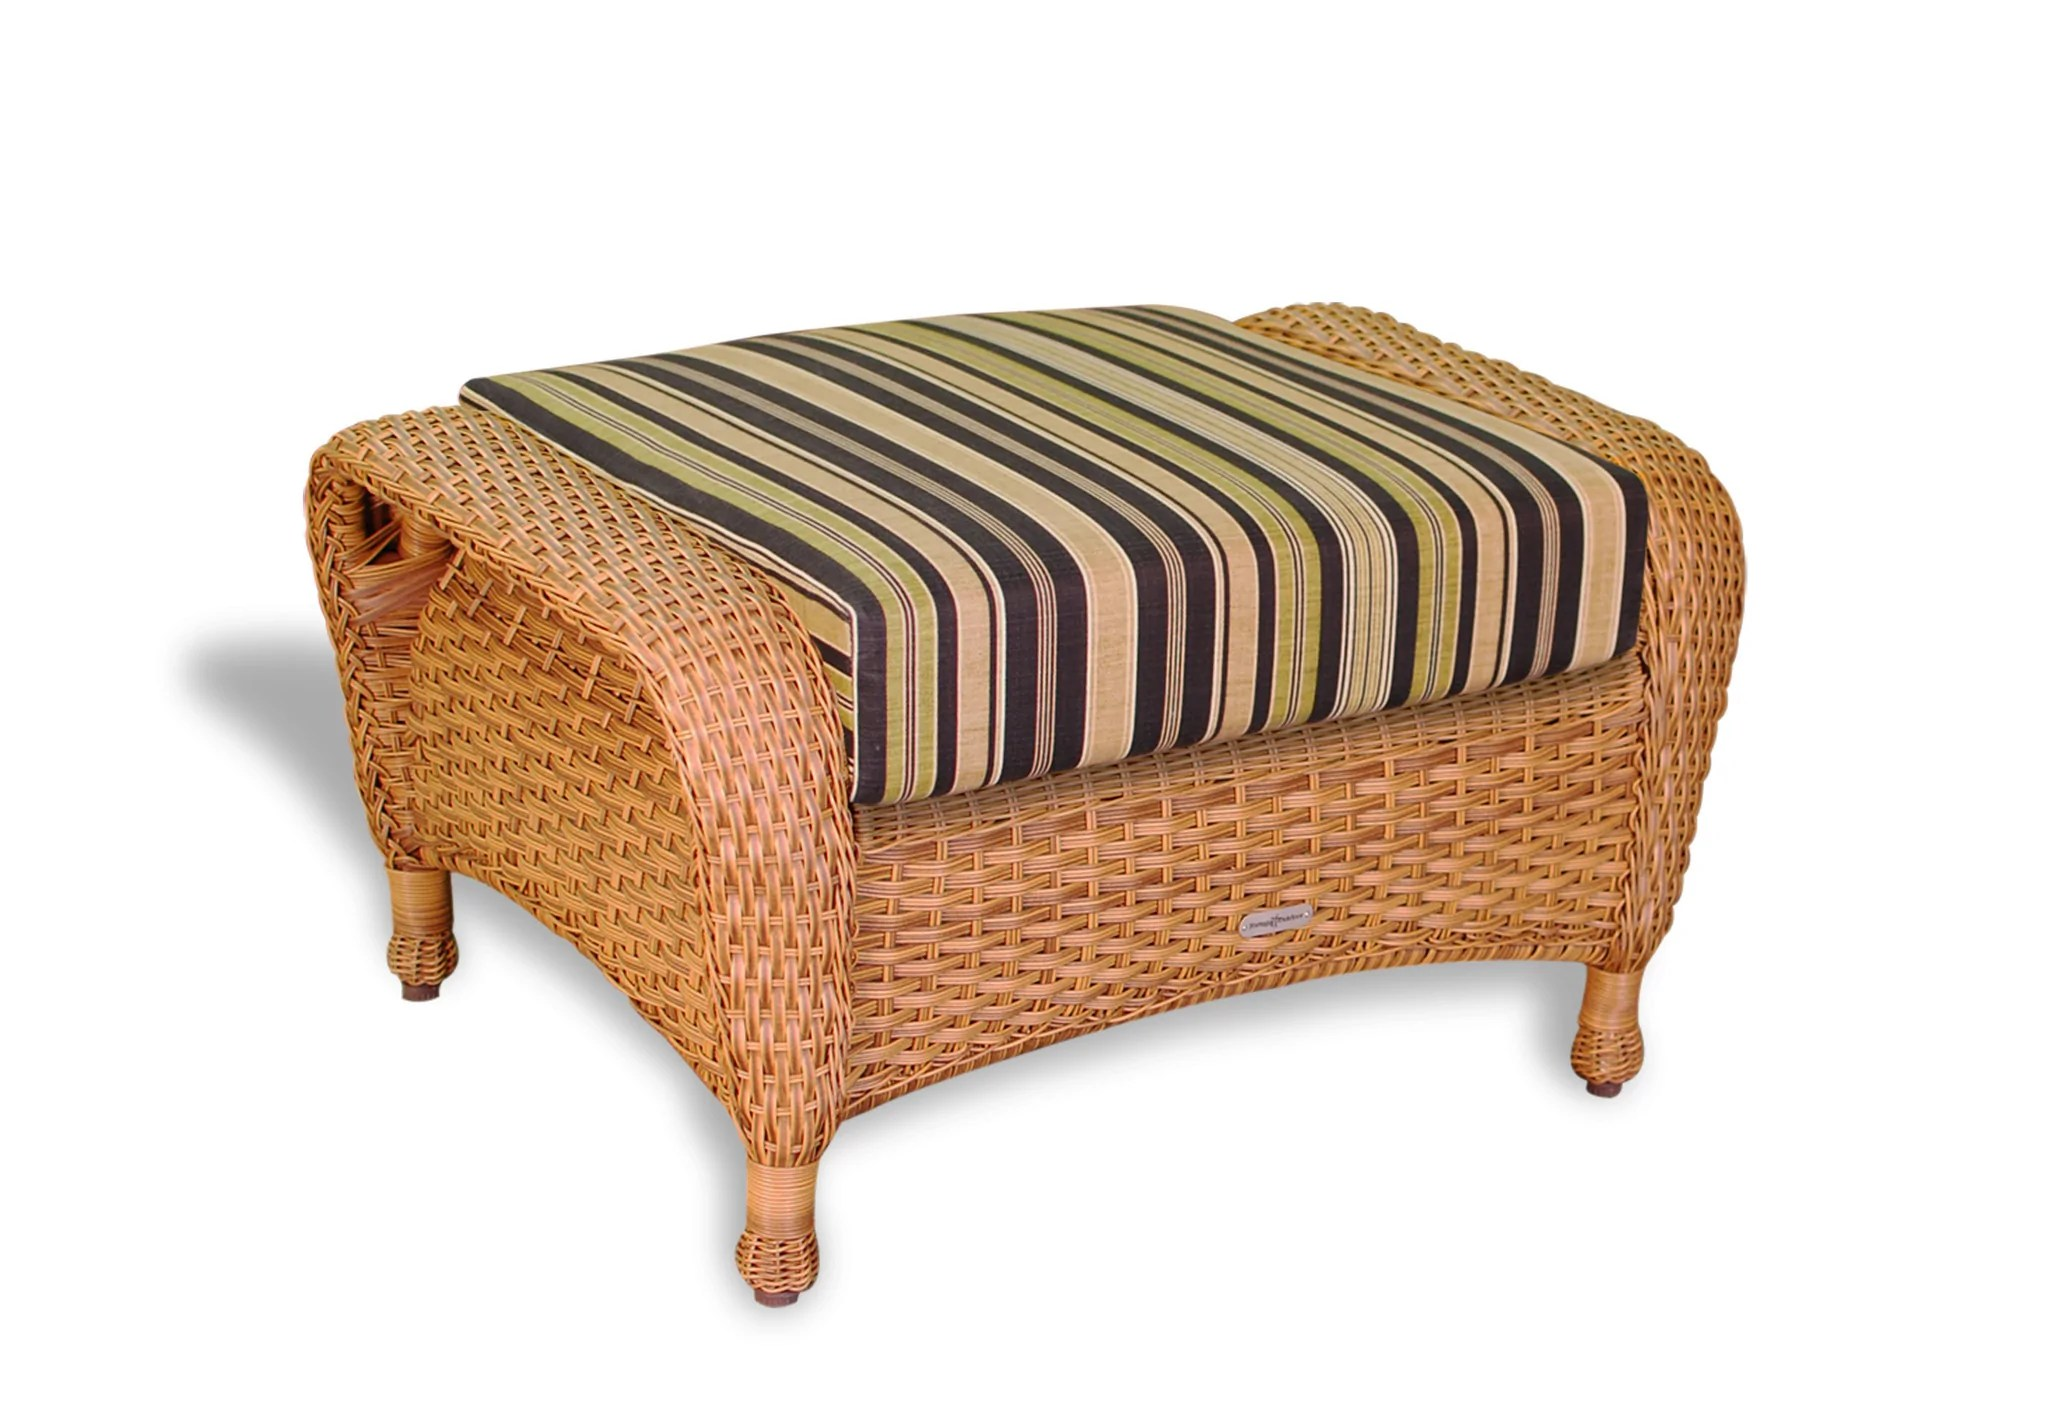 Wicker Ottoman The Sea Pines All Weather Wicker Ottoman Tortuga Outdoor